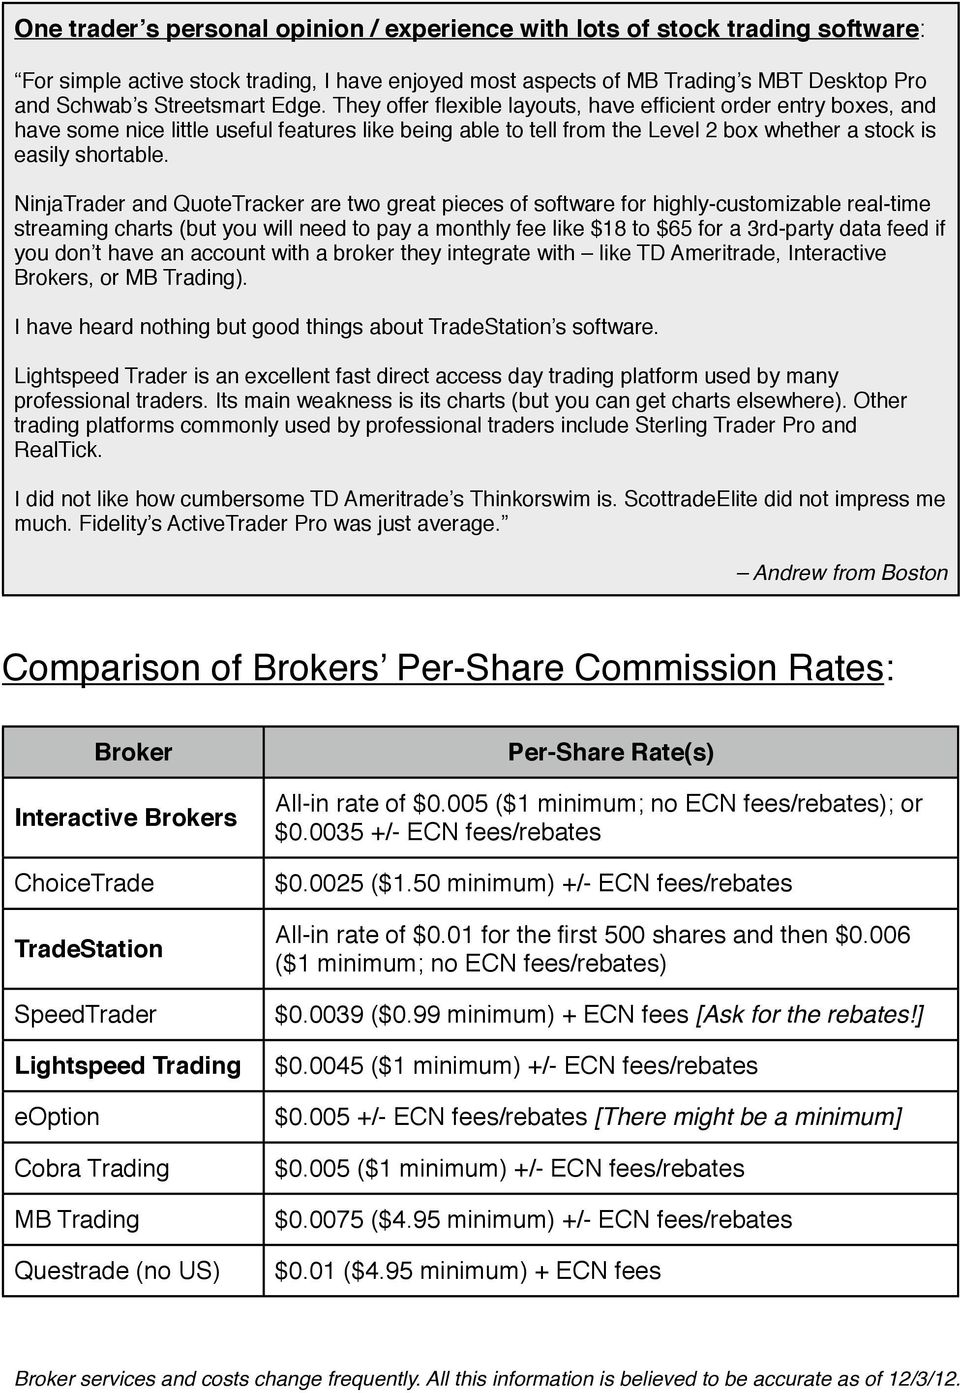 Garsworld Trading Academy Overview of 20 Main Brokers - PDF